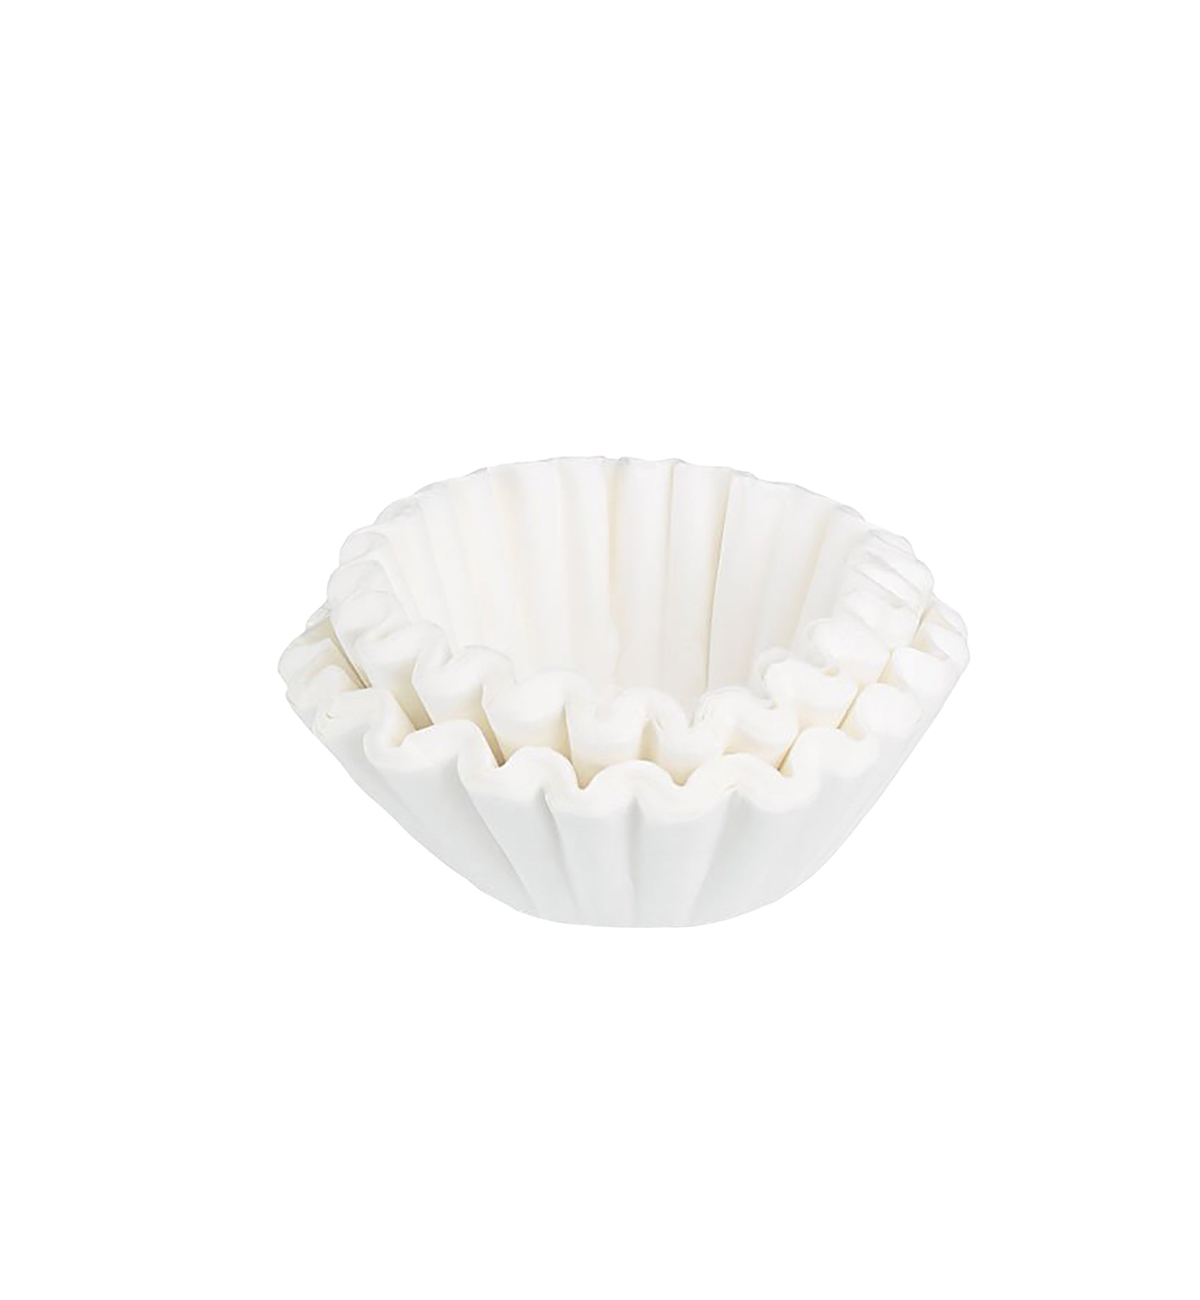 White Coffee Filters